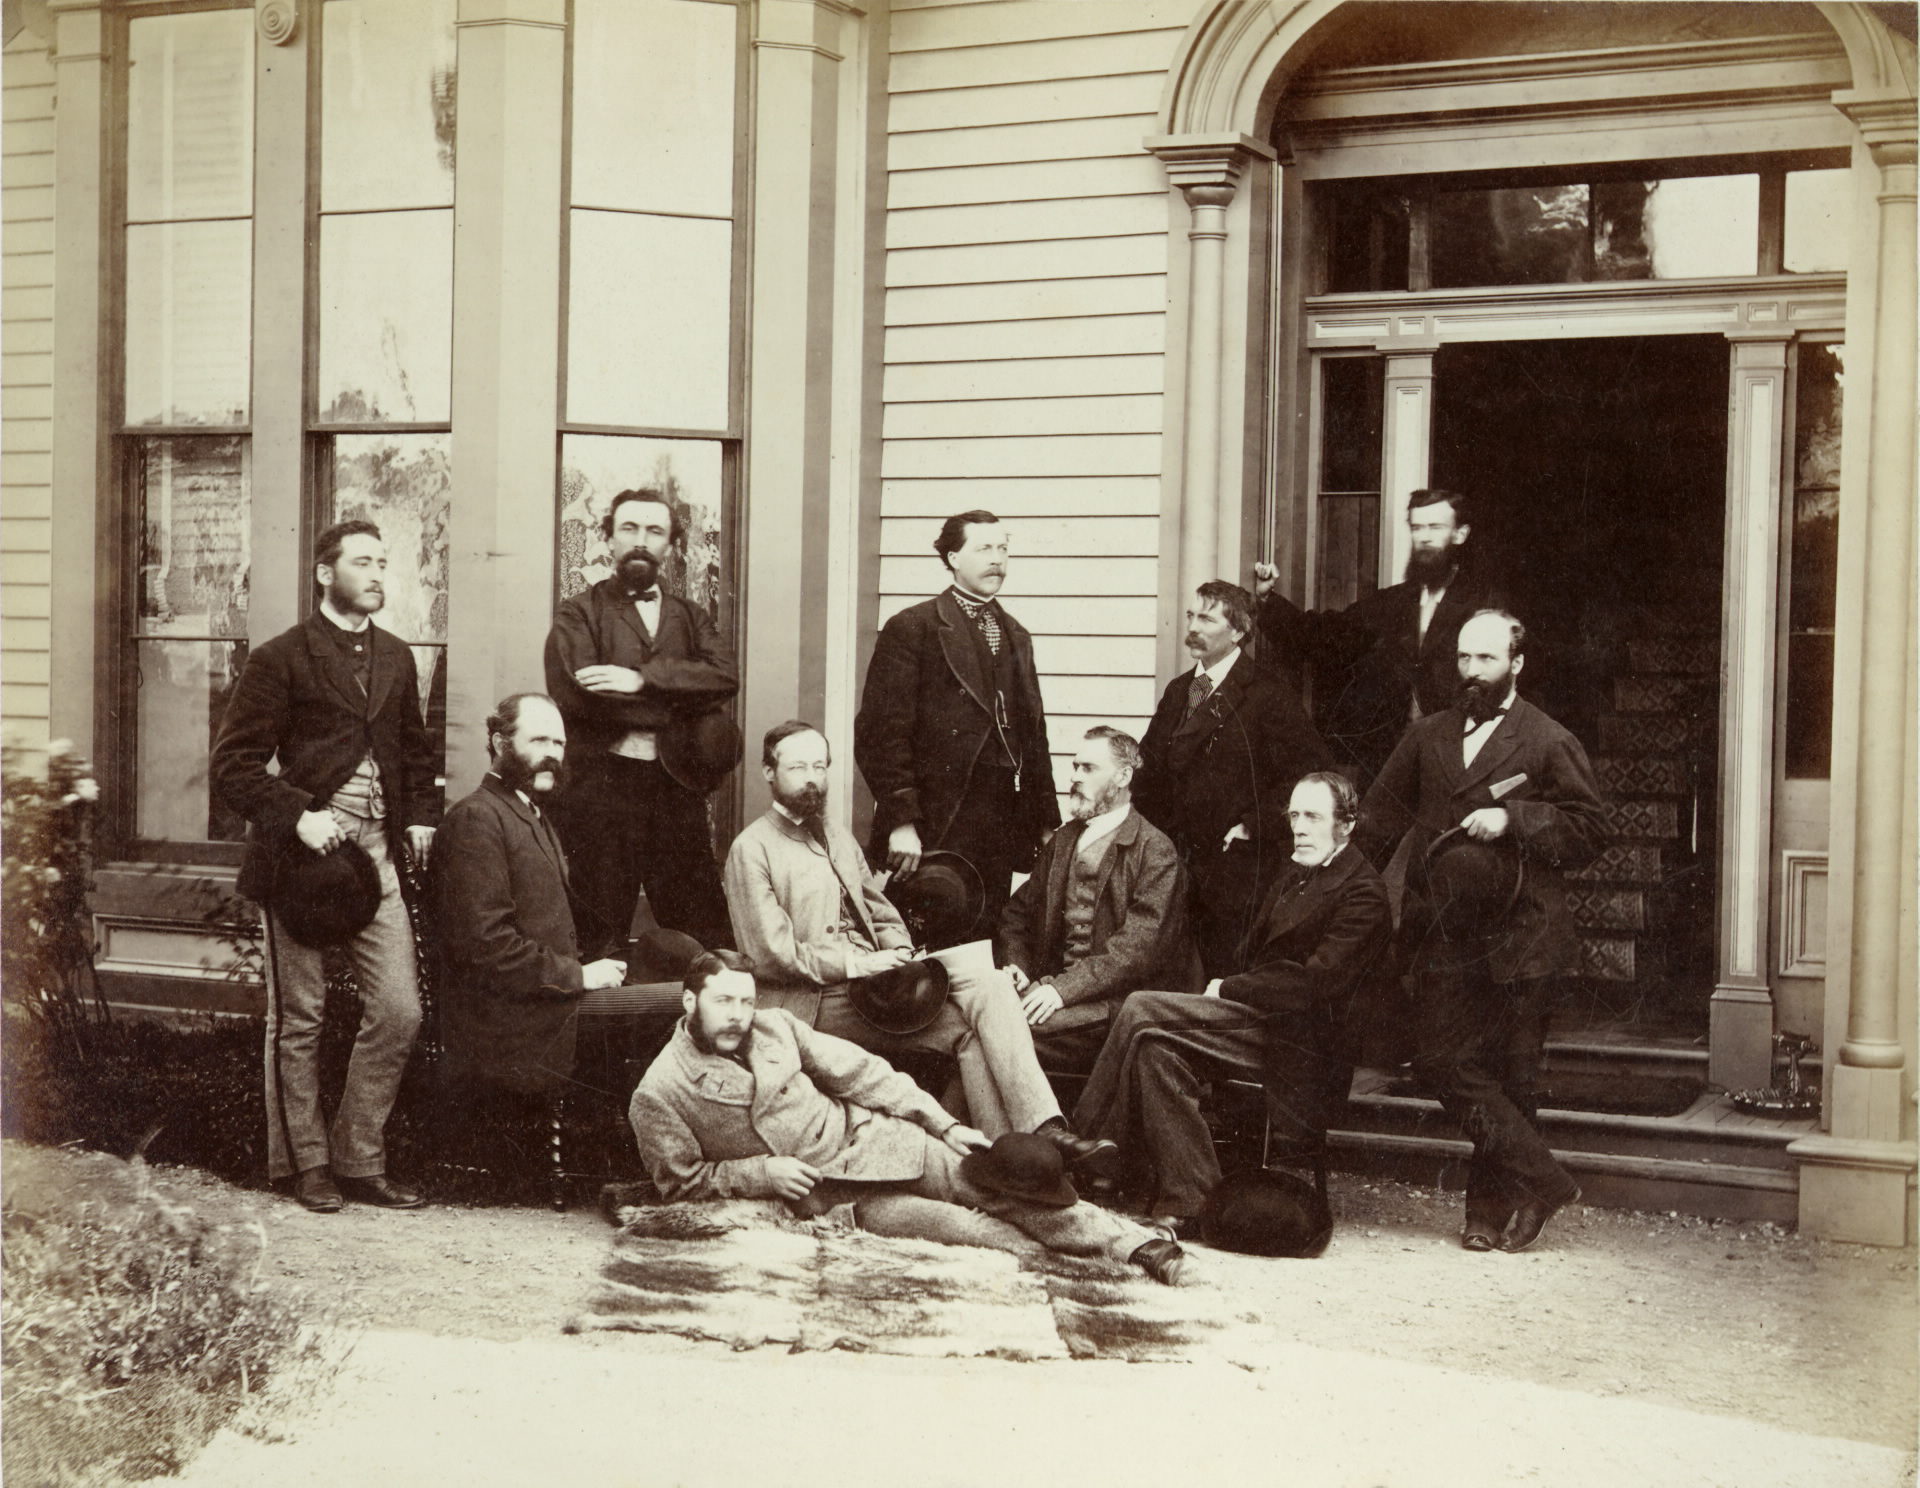 The First Canadian Pacific R.R. and Geological Survey parties for British Columbia, July 22, 1871. Photographer: Benjamin F Baltzy. Courtesy: Toronto Public Library Digital Collections